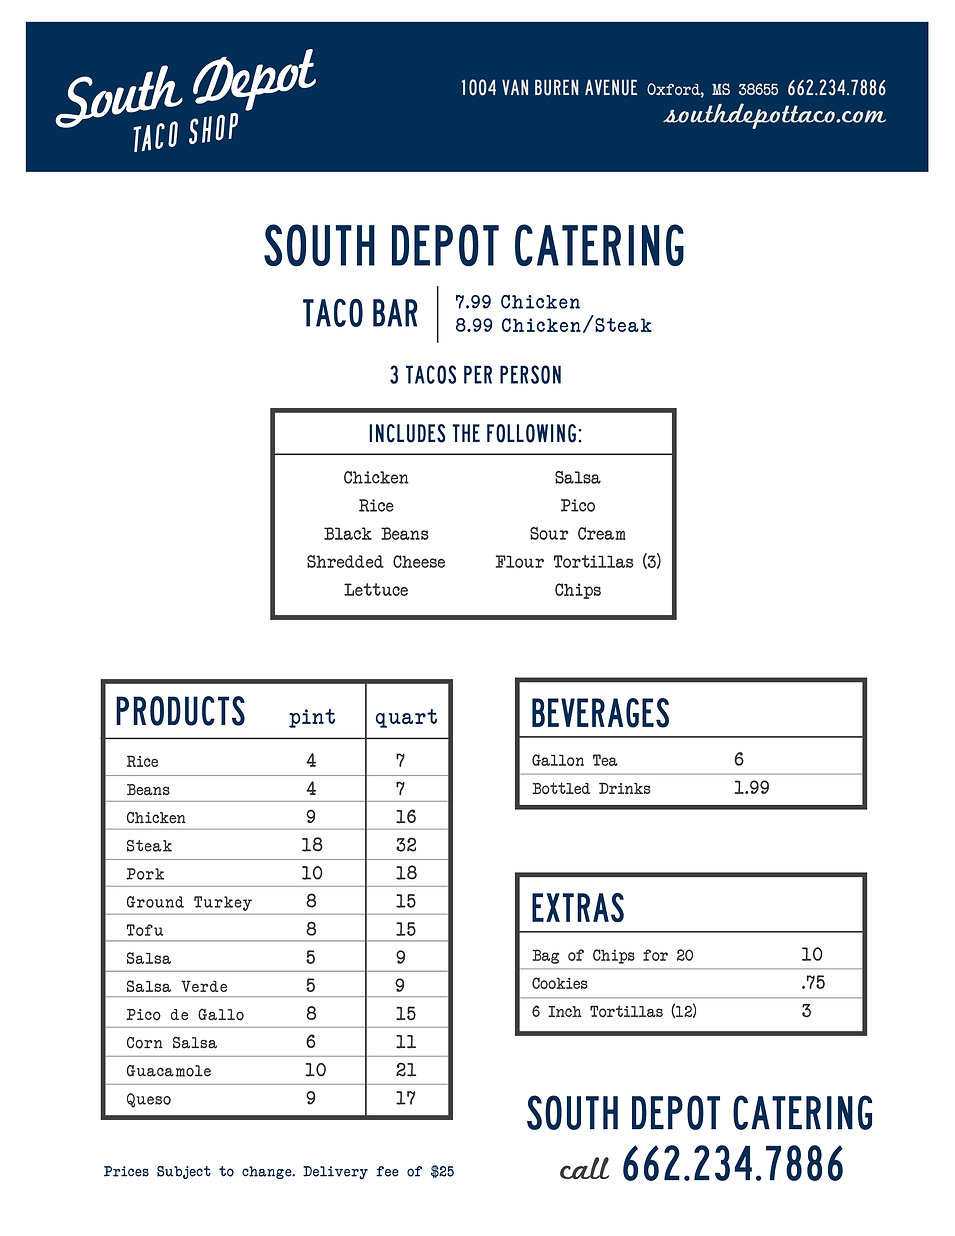 SDTS-MENU-CATERING.jpg